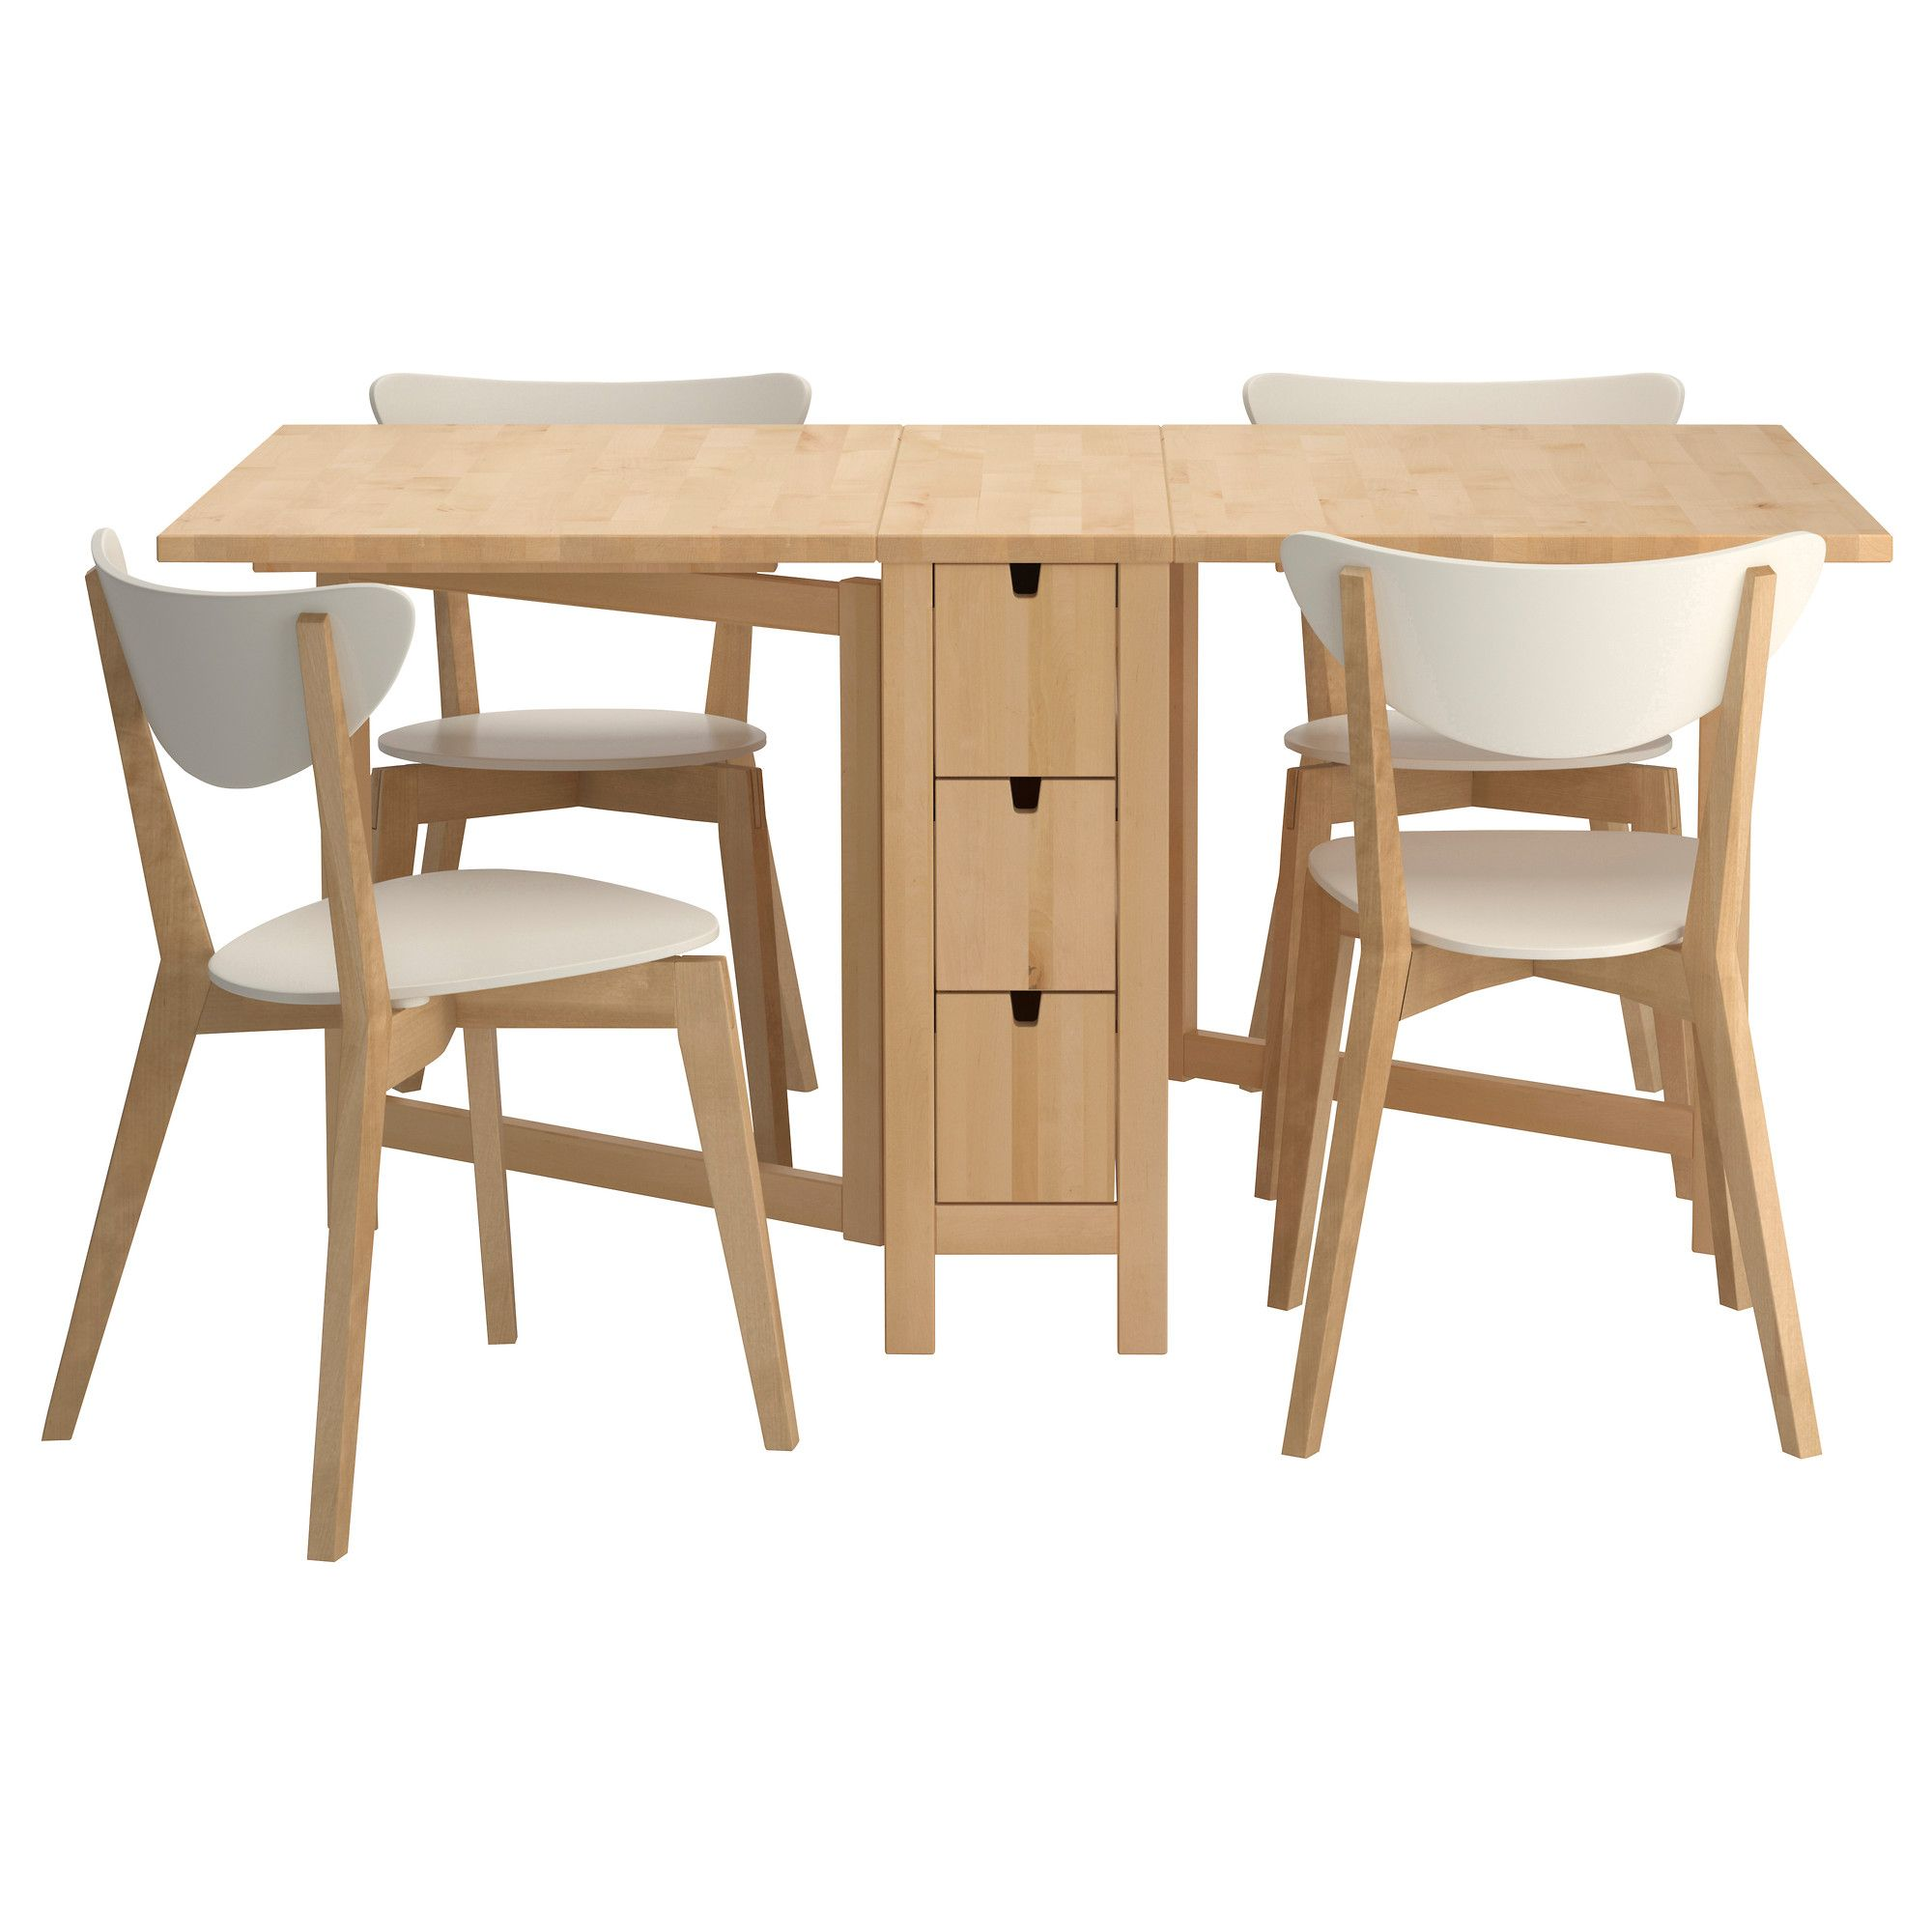 Furniture Beautiful Maple Wood Veneer Foldable Console Dining Table Set Chair With White Padded Seat Design Ideas Folding